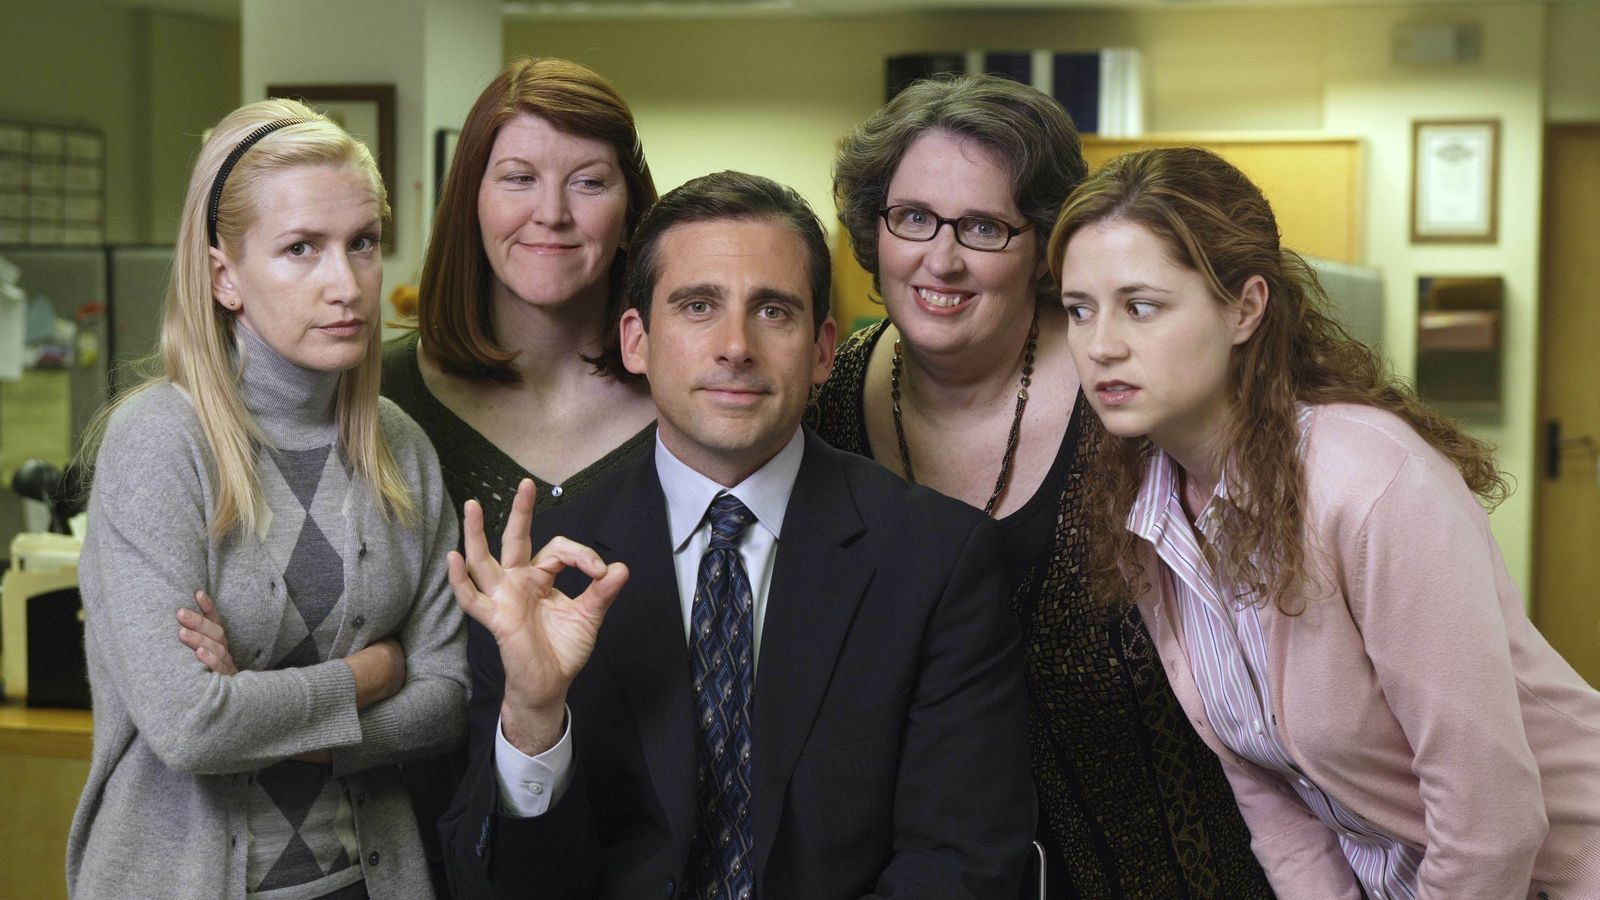 Per què torno a veure 'The office' i 'Friends'?